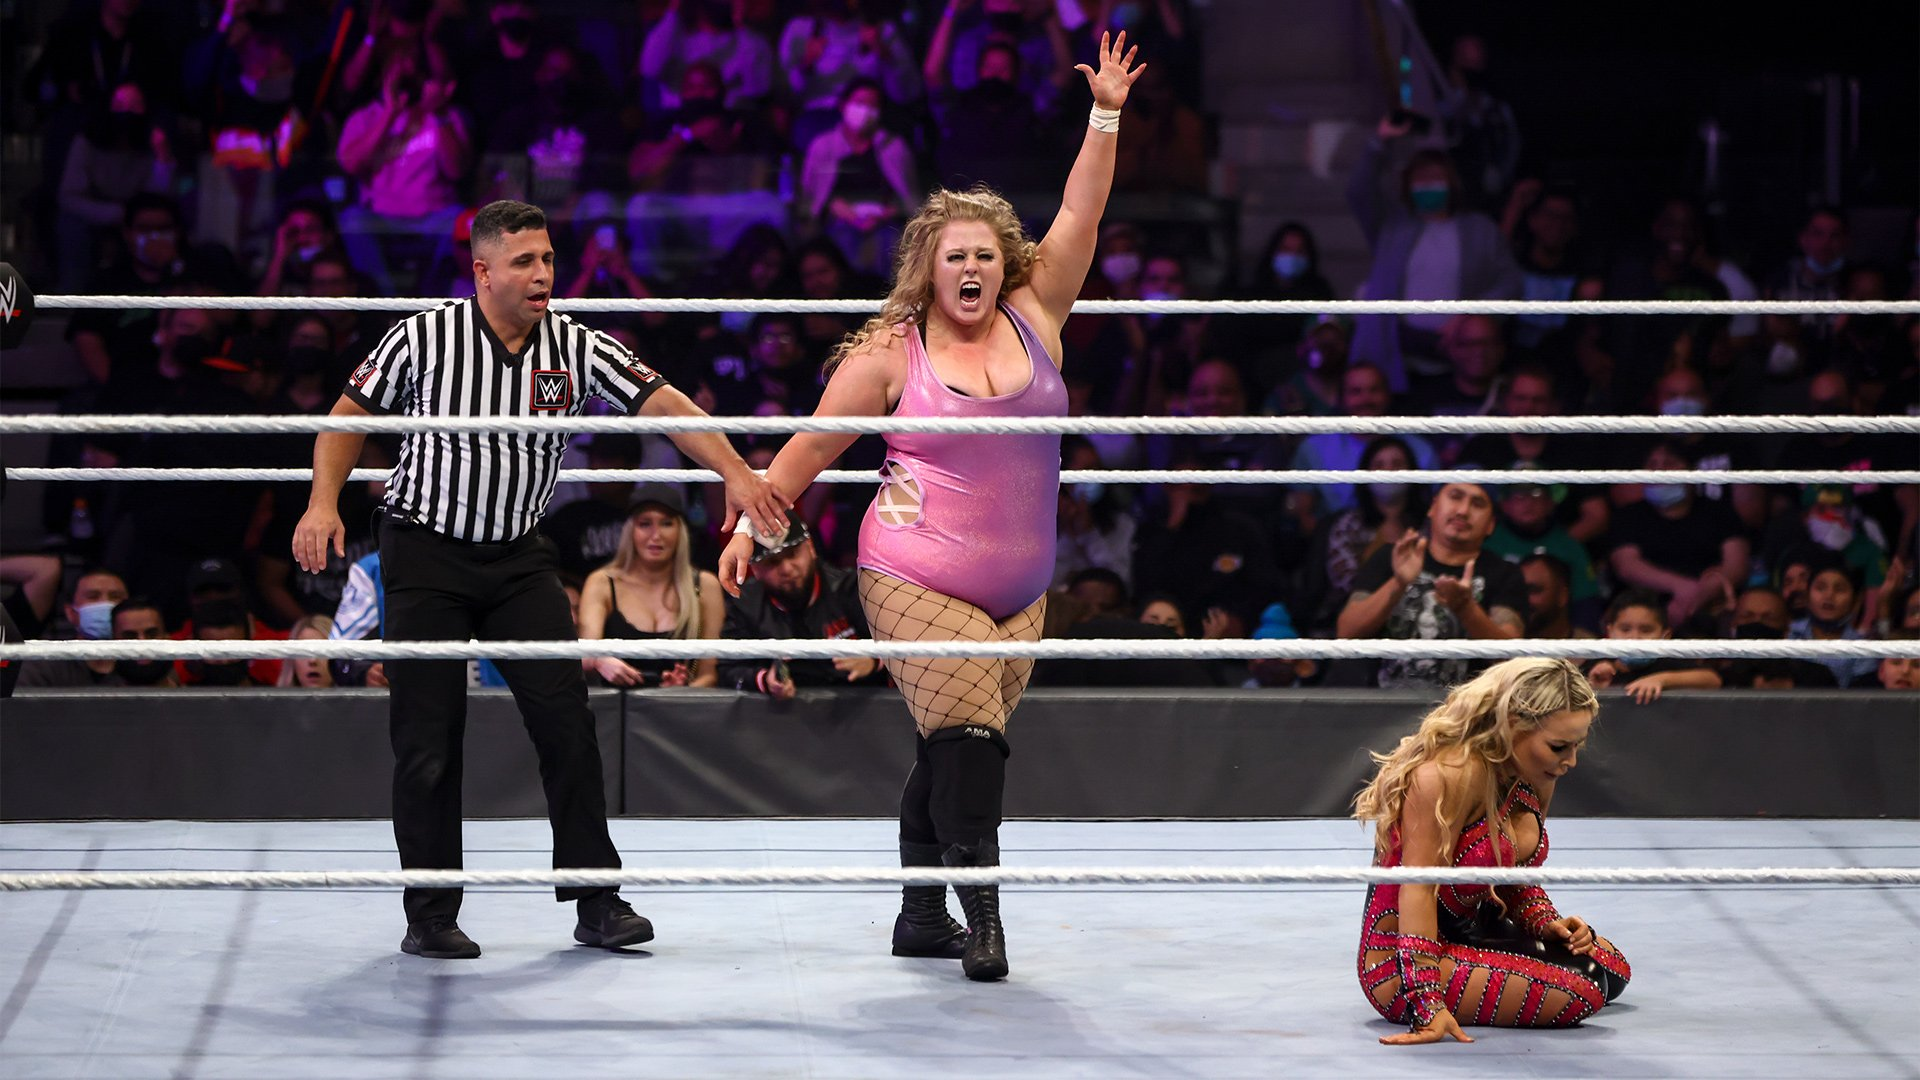 """Doudrop Vows To Win WWE Queen's Crown Tournament For All The Kids """"That Didn't Fit In"""""""